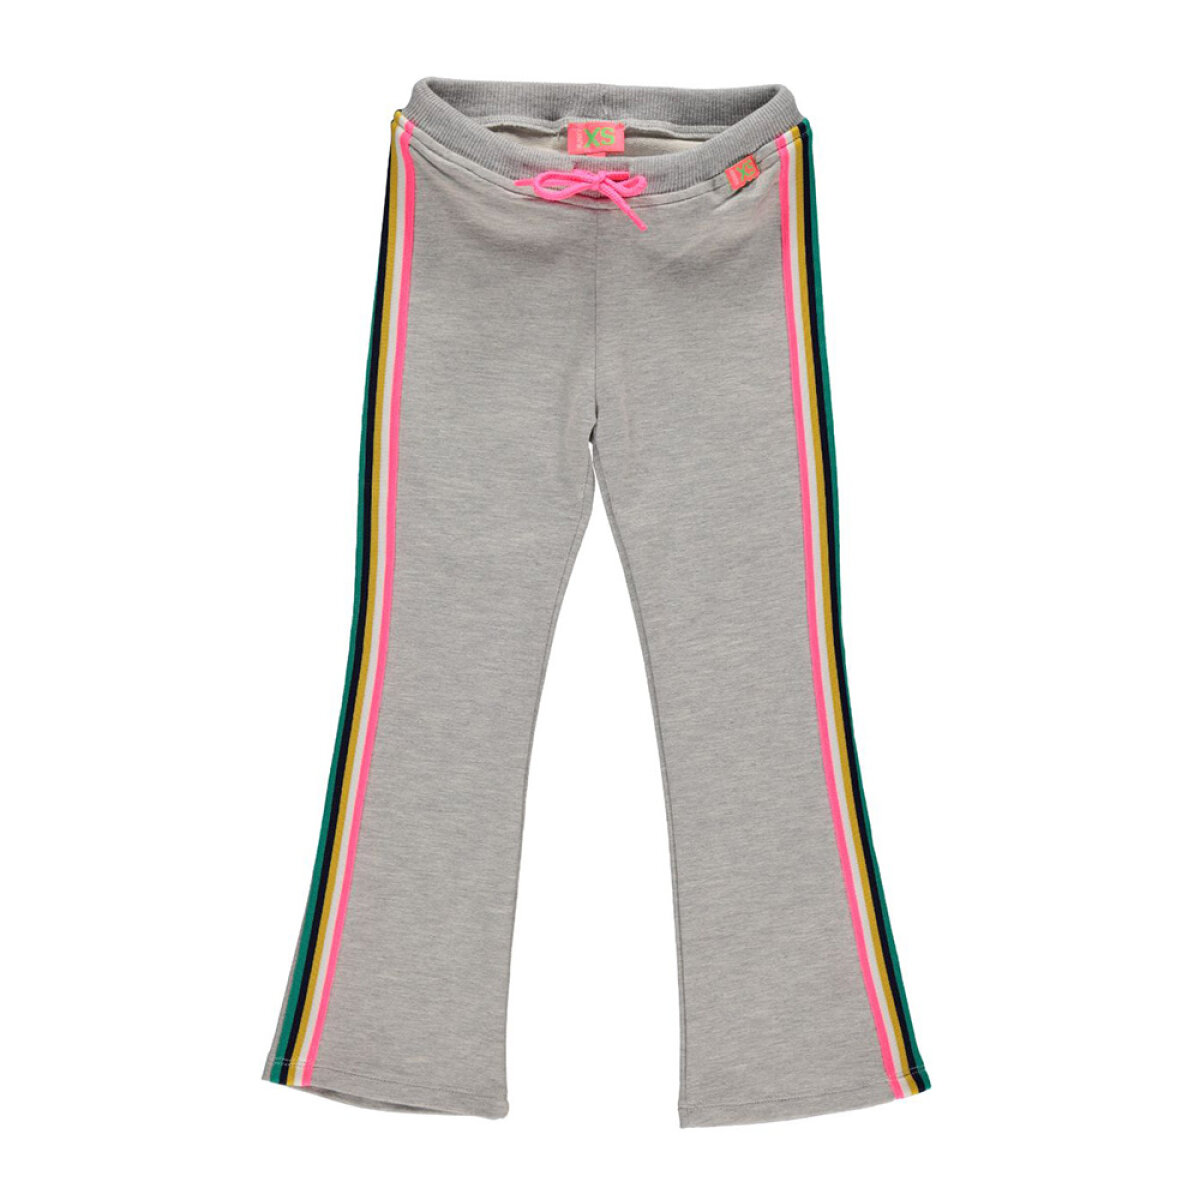 Funky XS flared pants 1727/CG1JOGGINGFLAIRED grijs